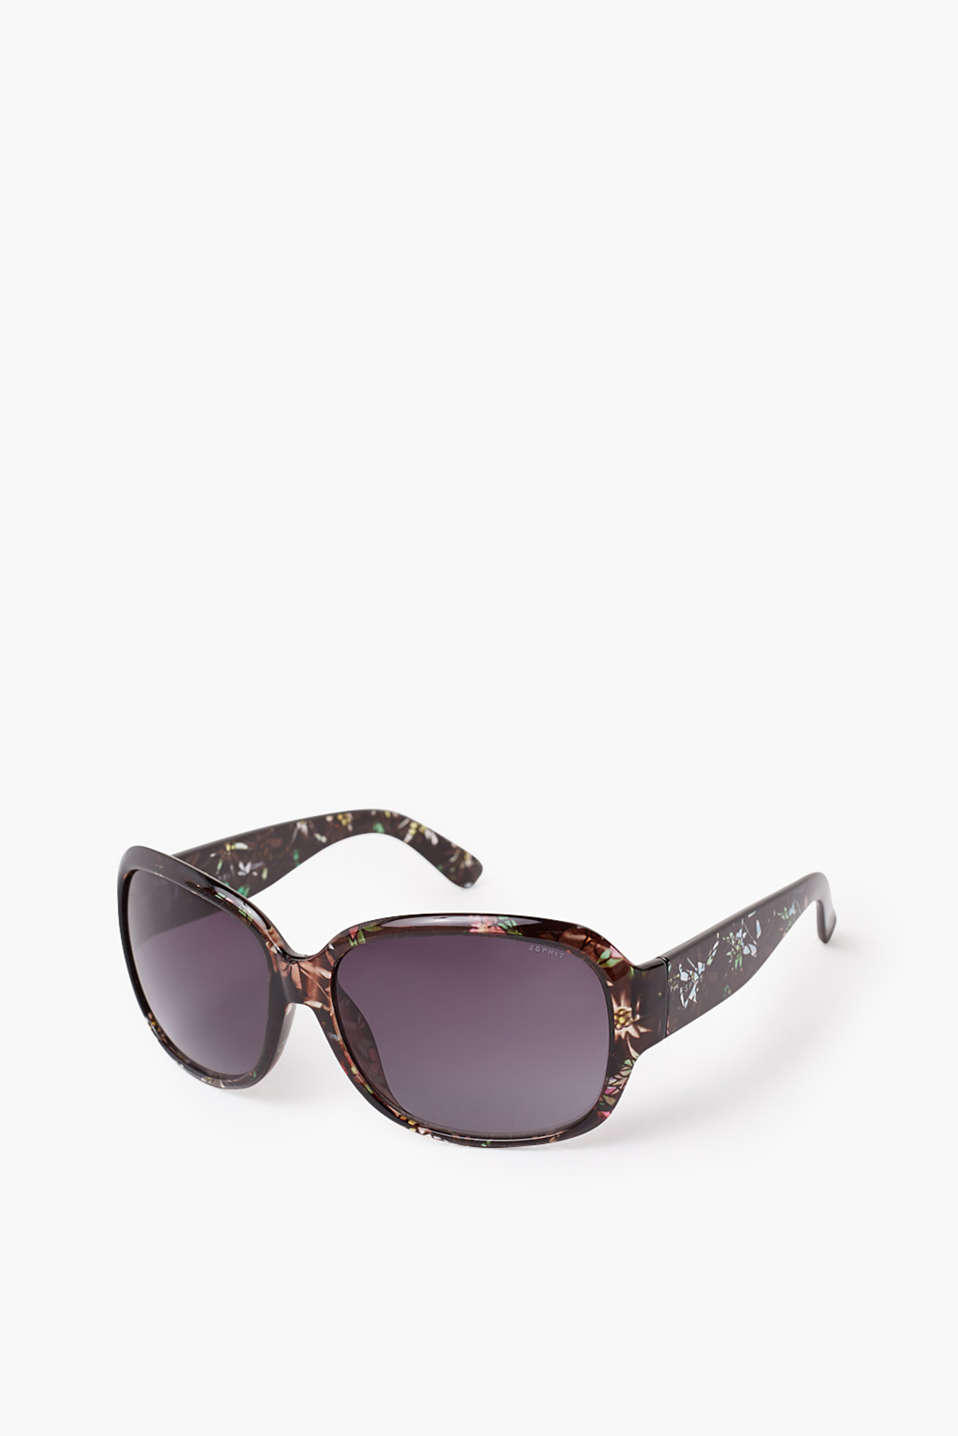 Elegant and pretty: plastic sunglasses with a floral pattern on the temples and graduated colour lenses